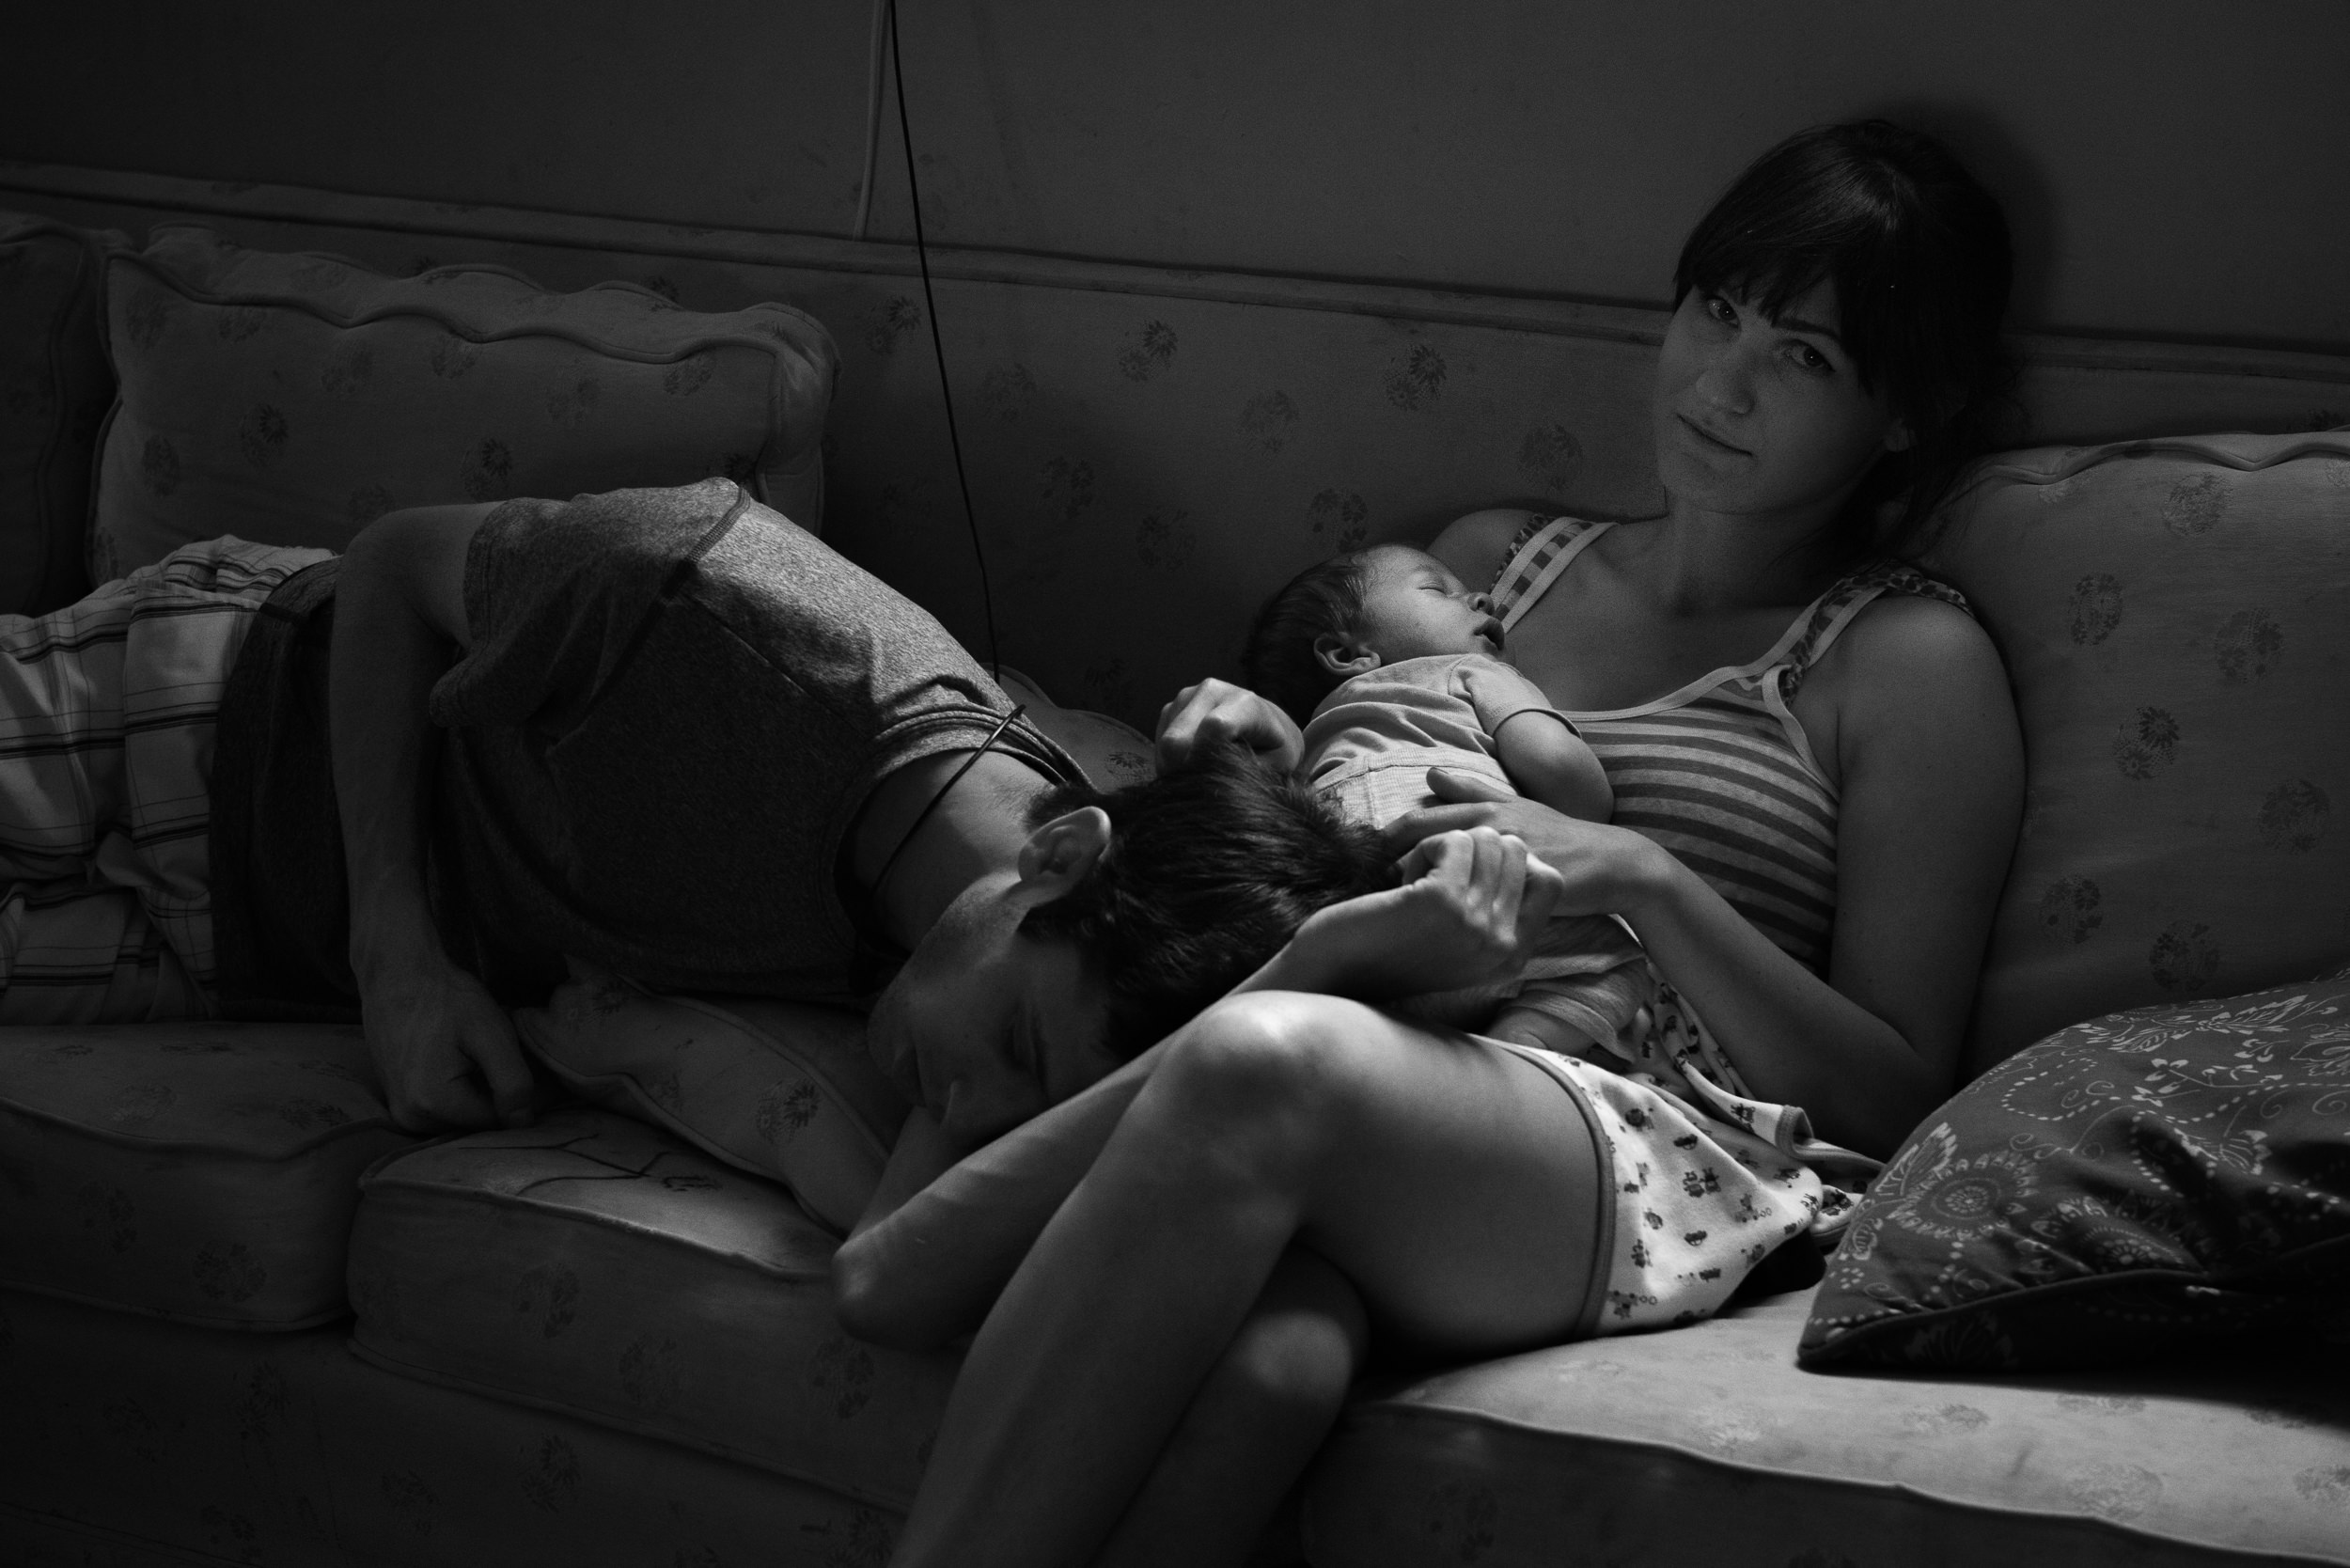 Molly Rees Photo - Black and White Documentary Family Photography - Portrait of tired new parents with newborn baby by M. Menschel